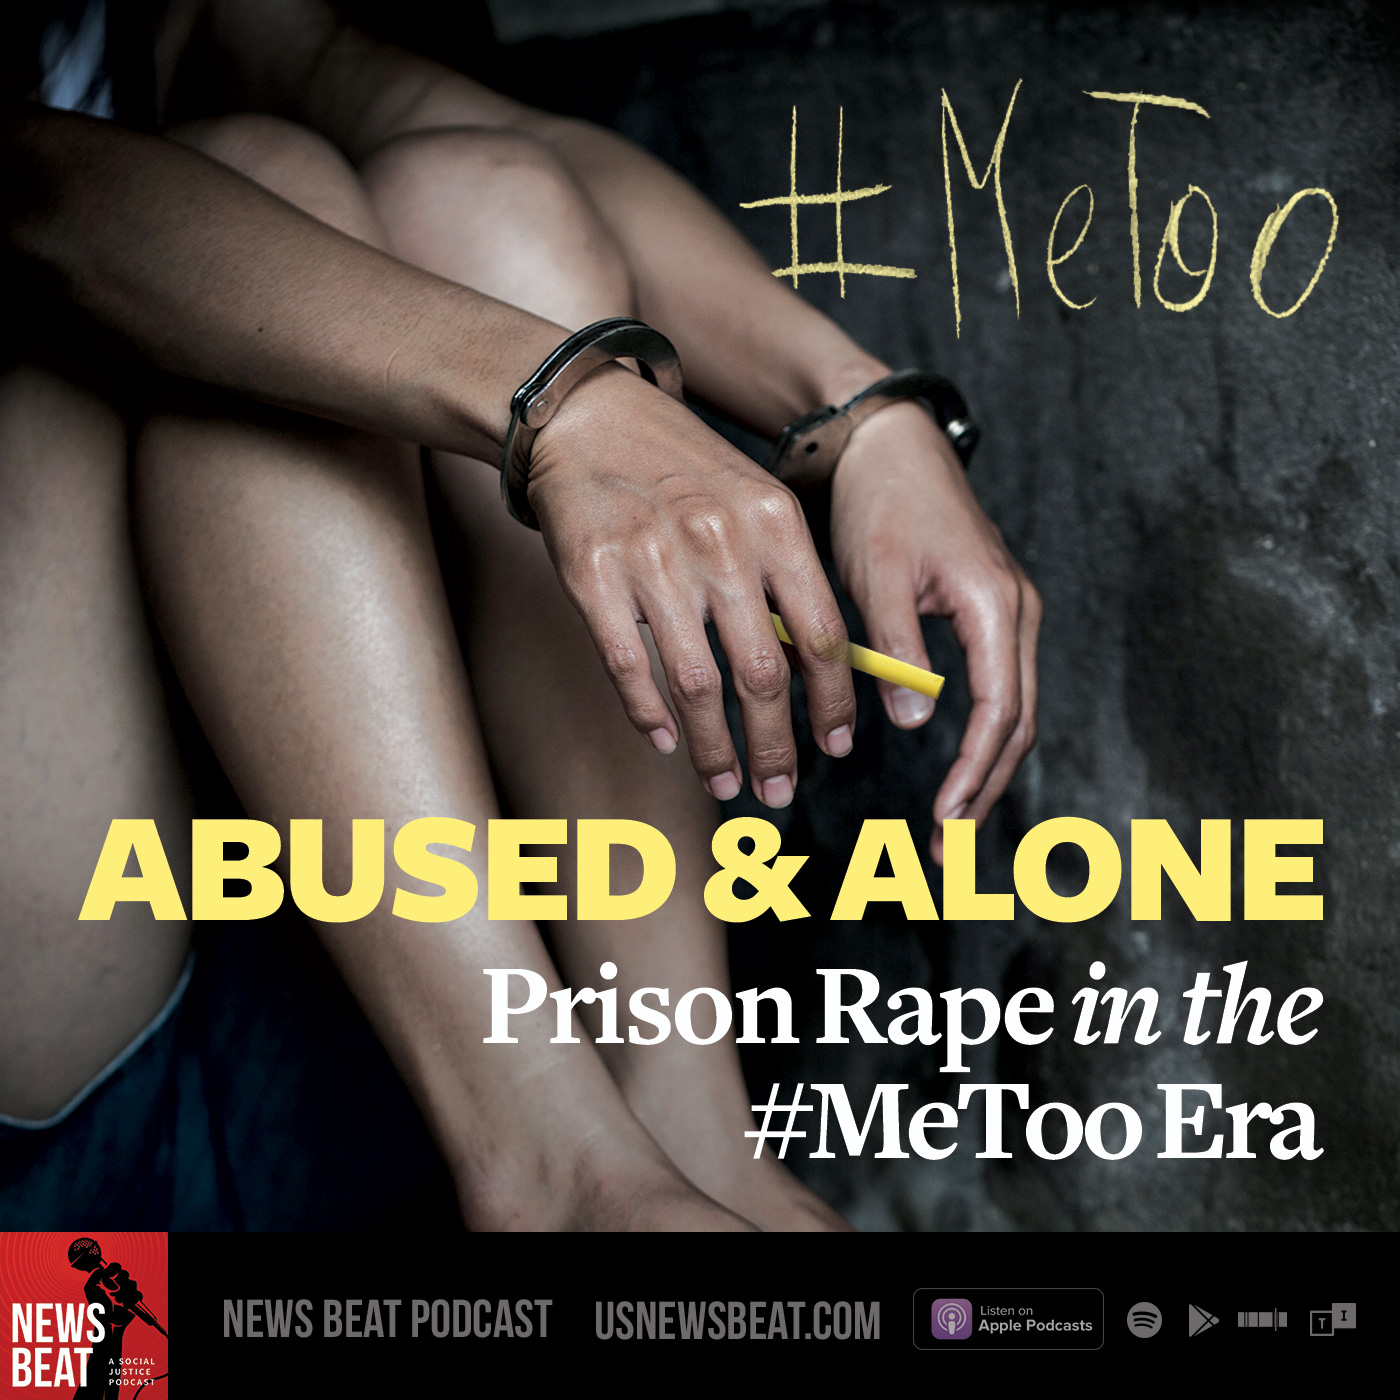 Abused & Alone